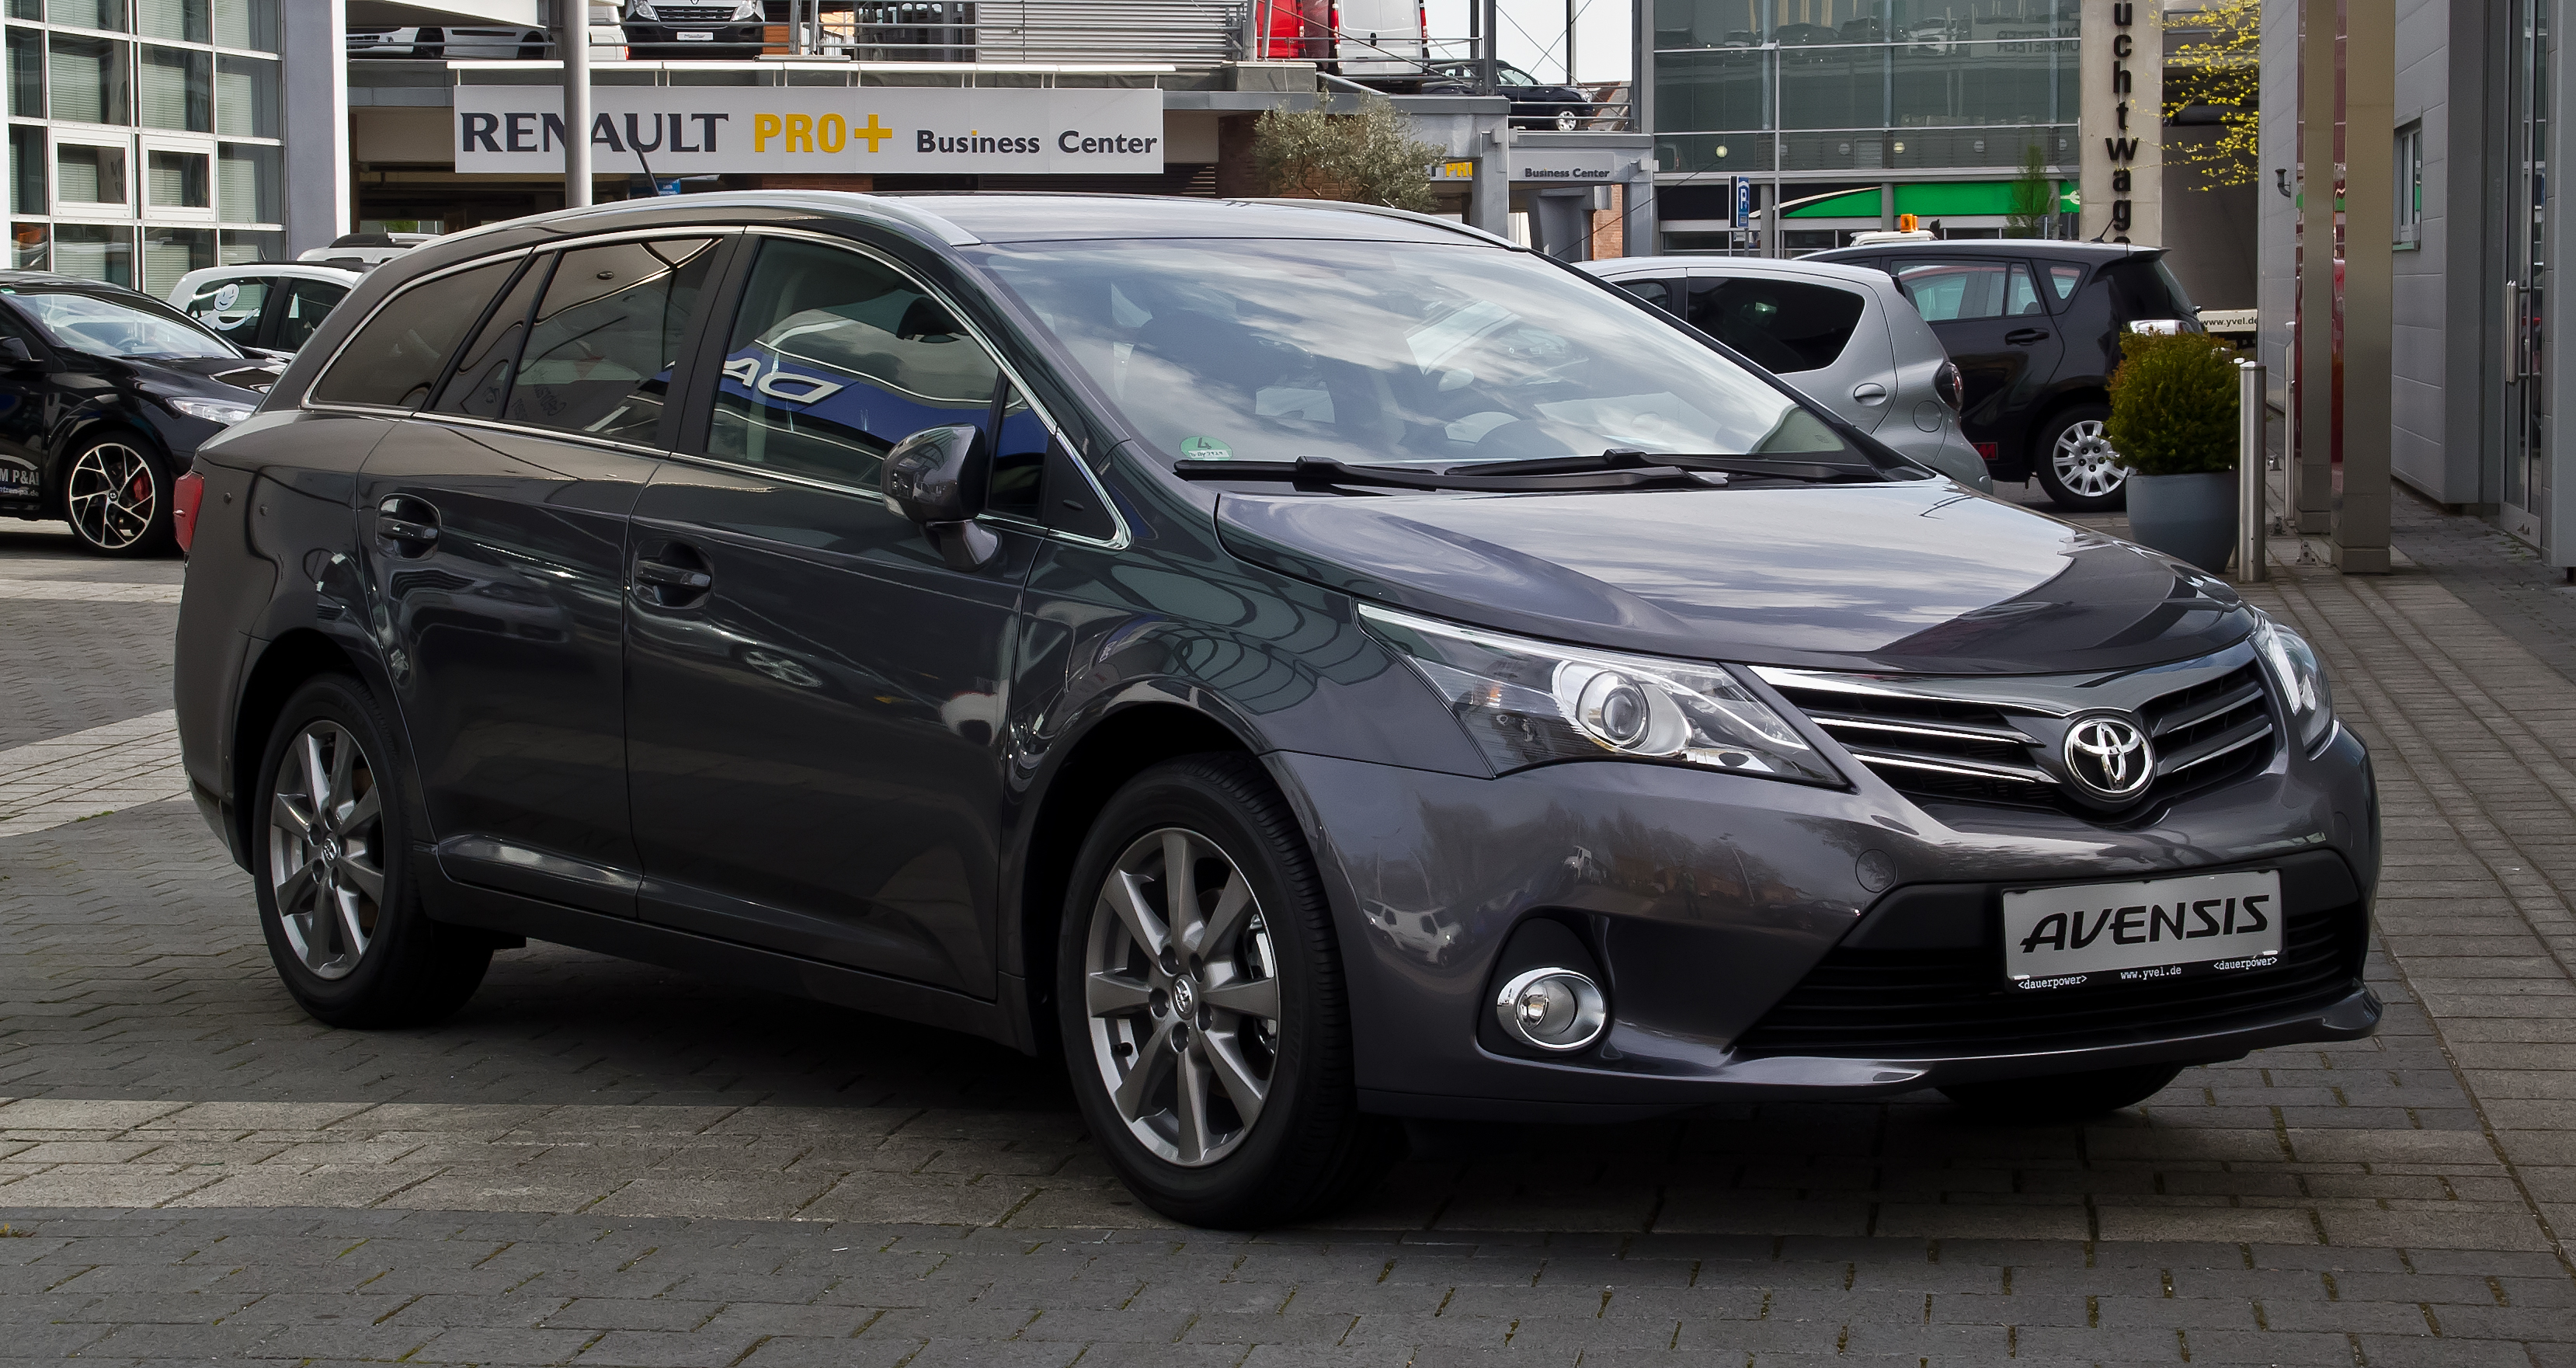 toyota avensis 1.8 executive-pic. 2